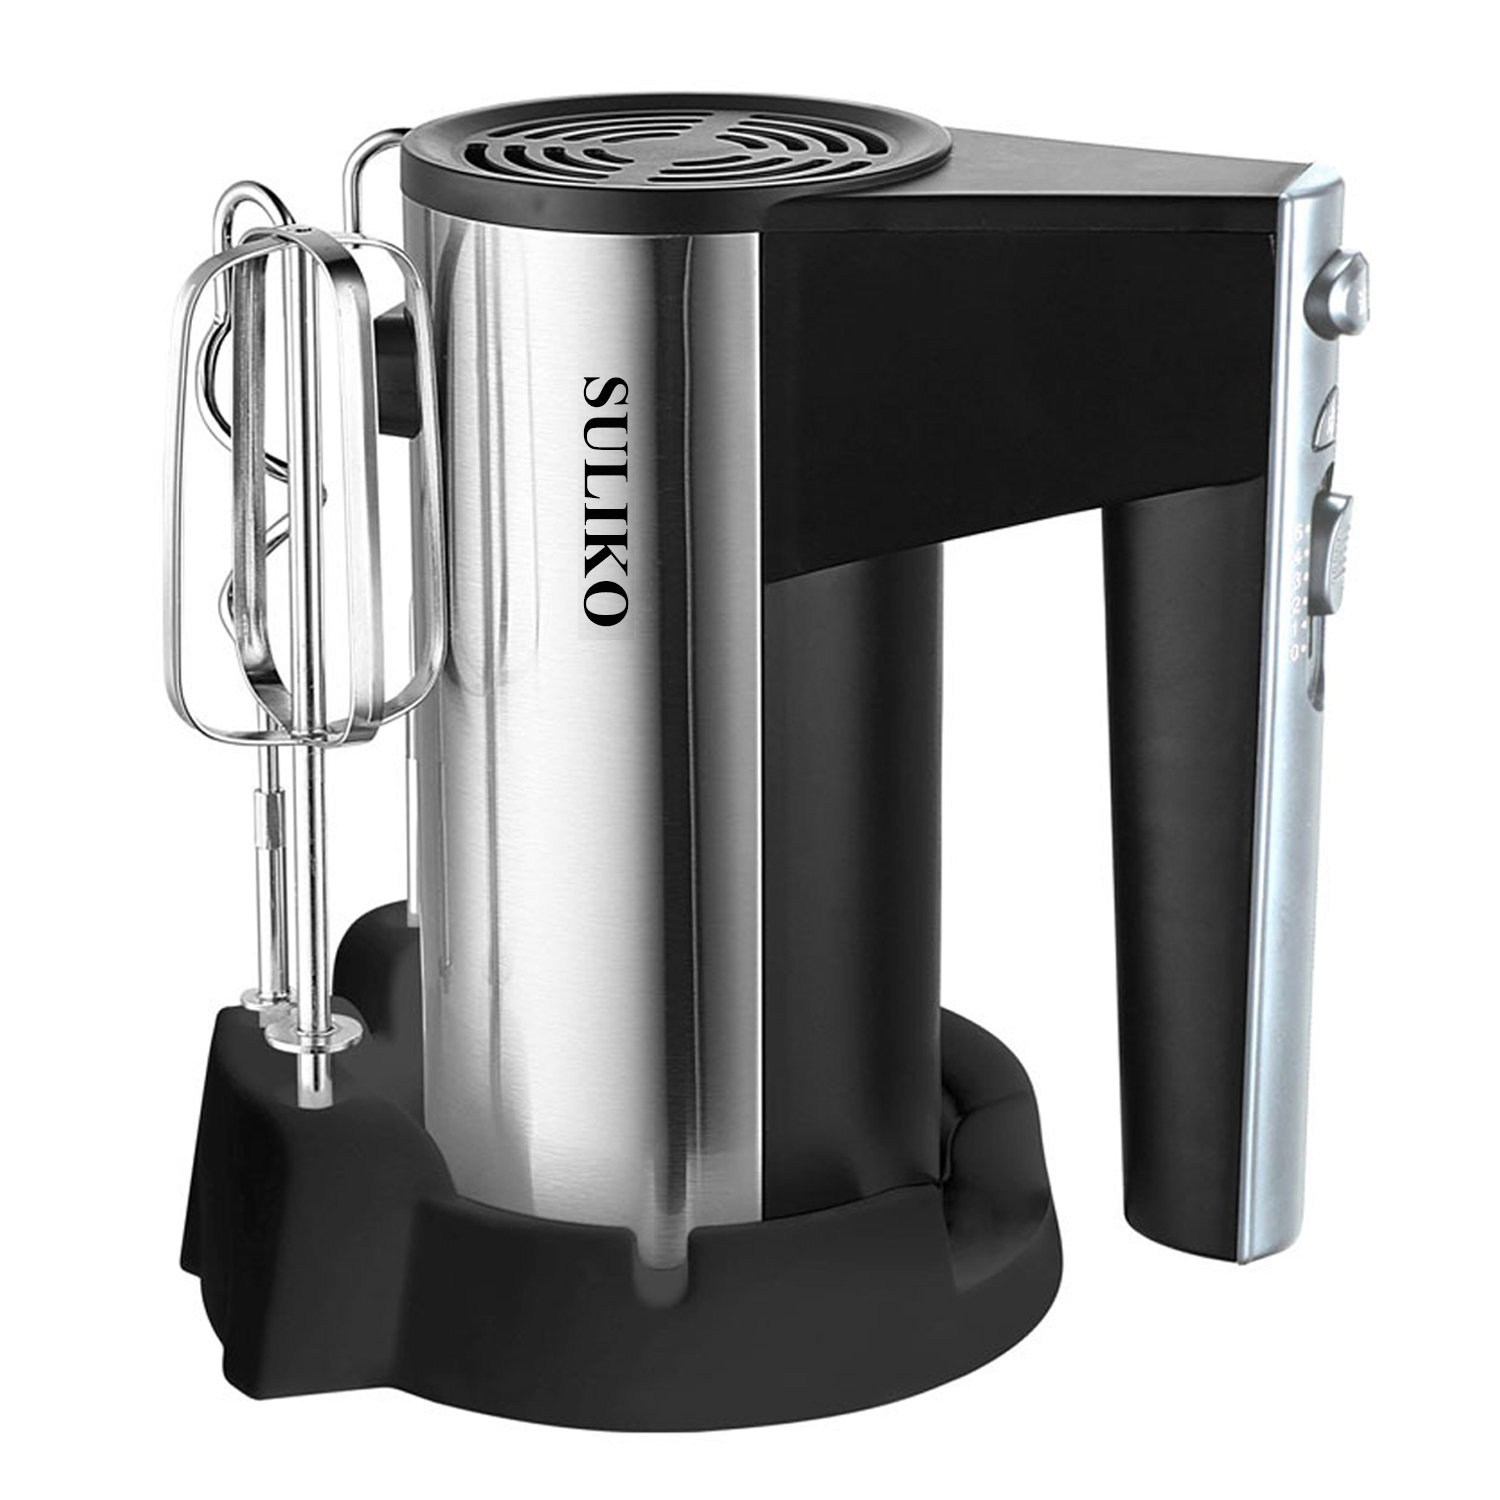 Electric Hand Mixer, Suliko Stainless Steel Mixer Electric 200W 5 Different Speed Settings and Turbo Button with Sturdy Beaters and Dough Hooks, Silver【1 Year Warranty】